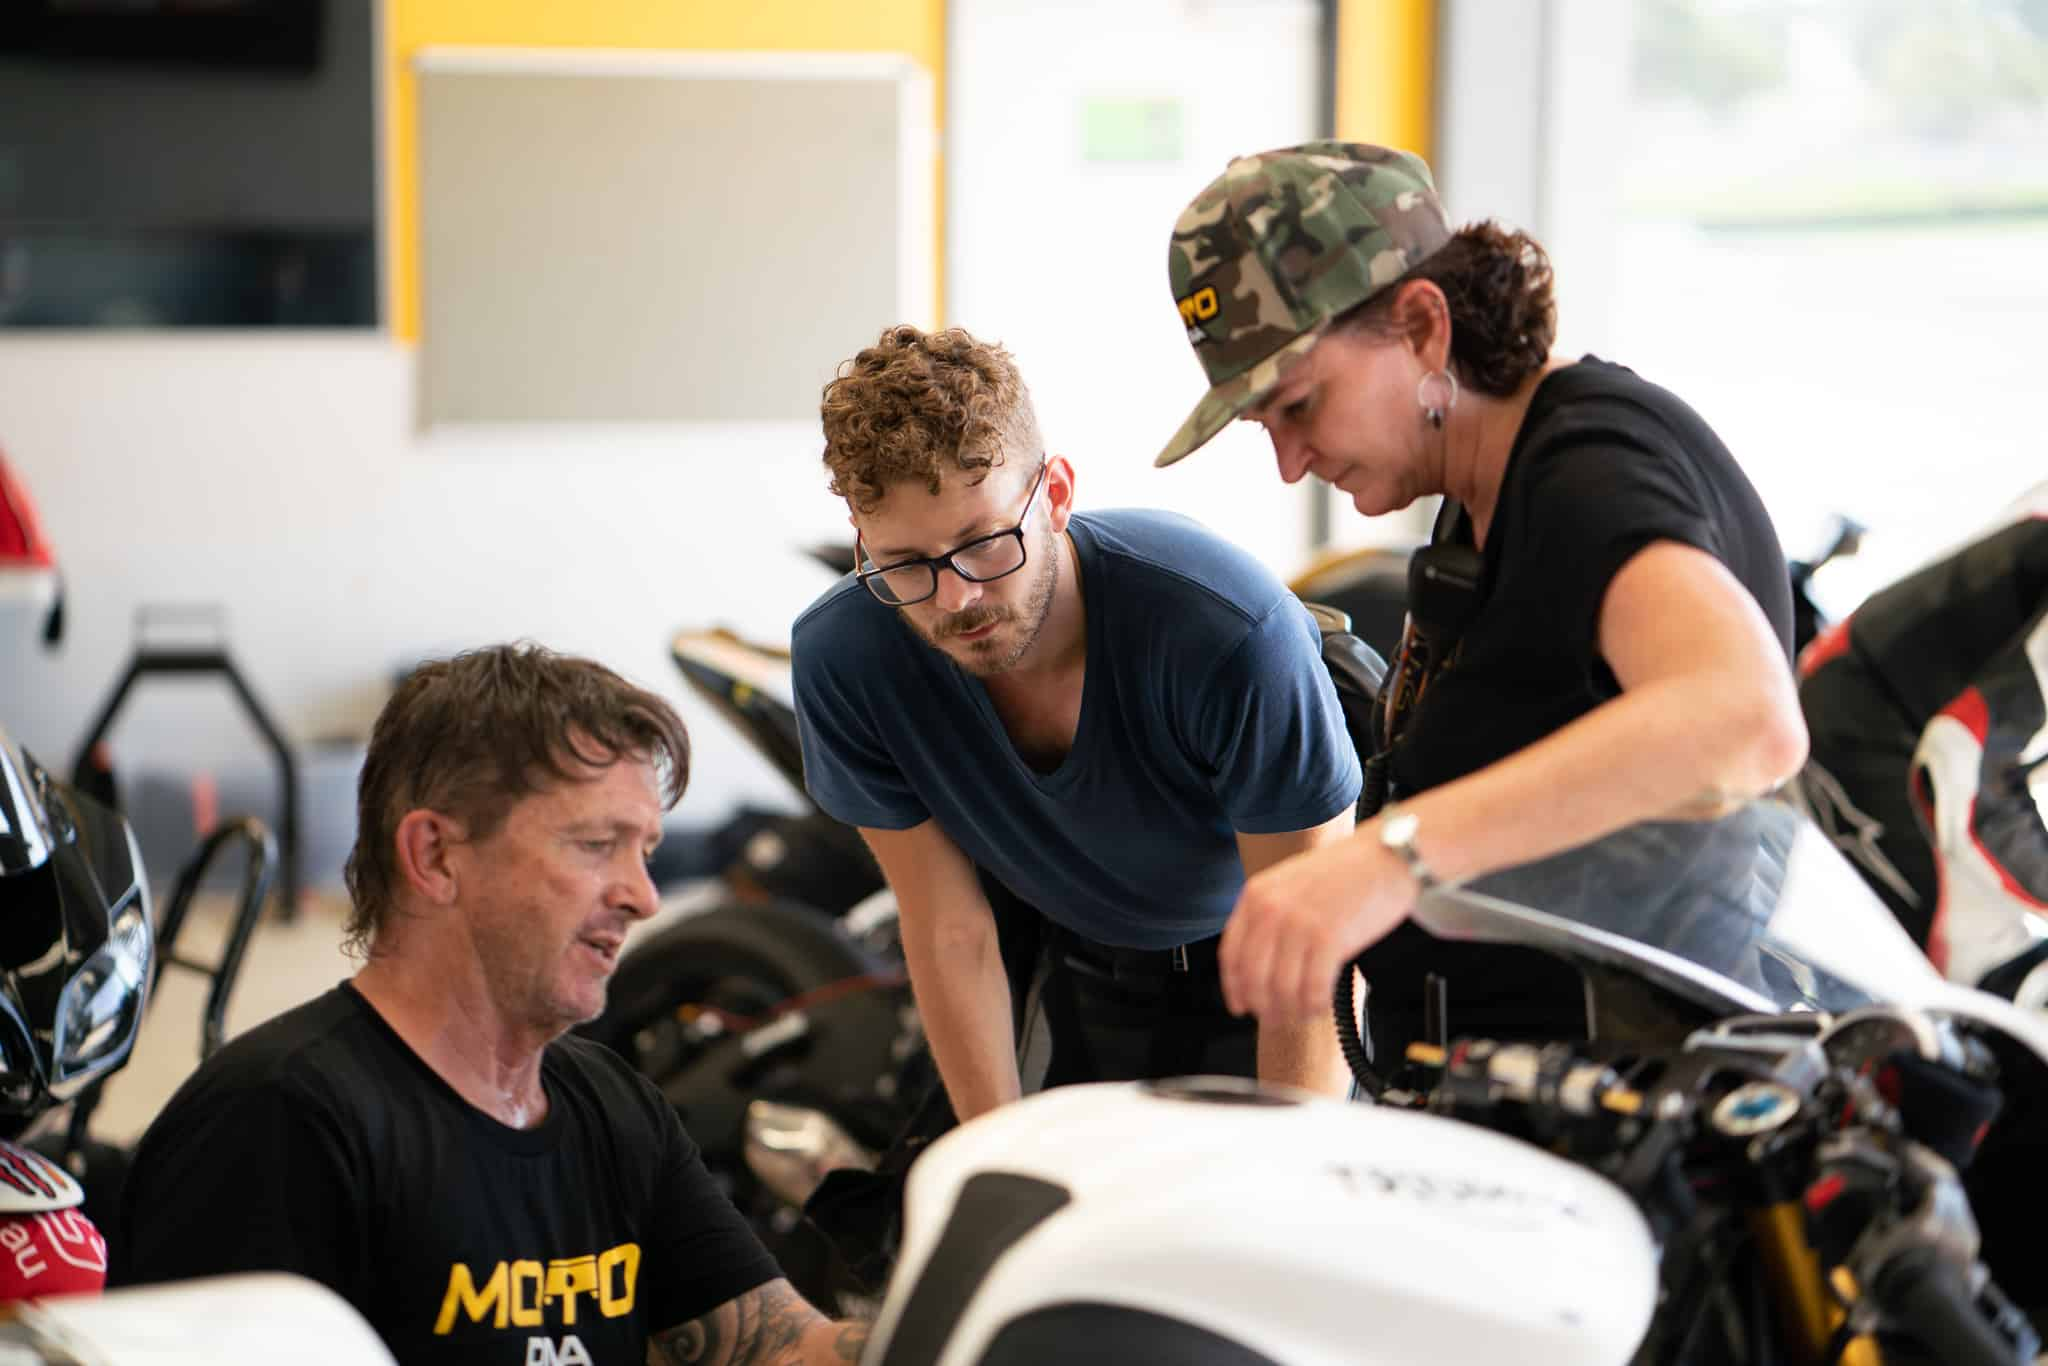 Riding A Motorcycle At 265 km/h With Your Eyes Closed - motoDNA ...